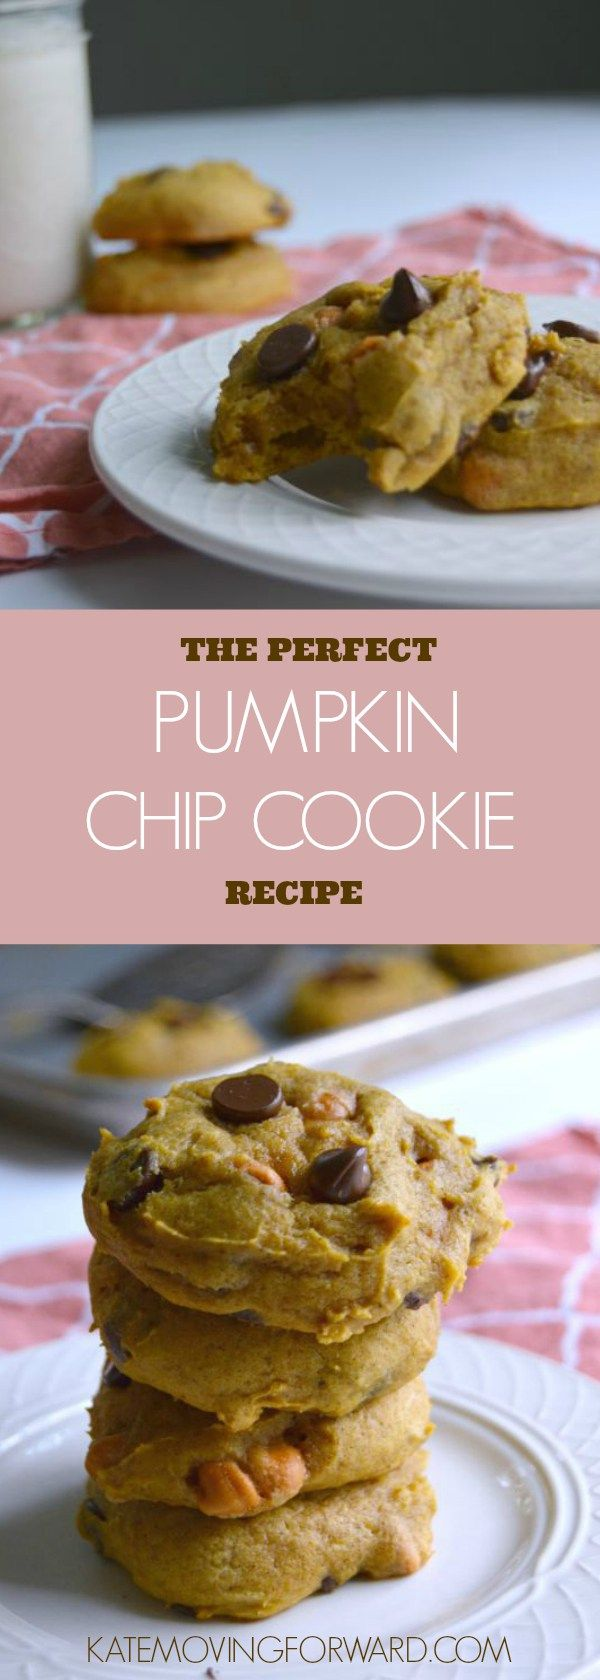 Pumpkin Chip Cookie - Pumpkin Chocolate Chip Cookie - Pumpkin Cookie Recipe - Pumpkin Cookies Easy - Pumpkin Cookies - Easy Fall Desserts